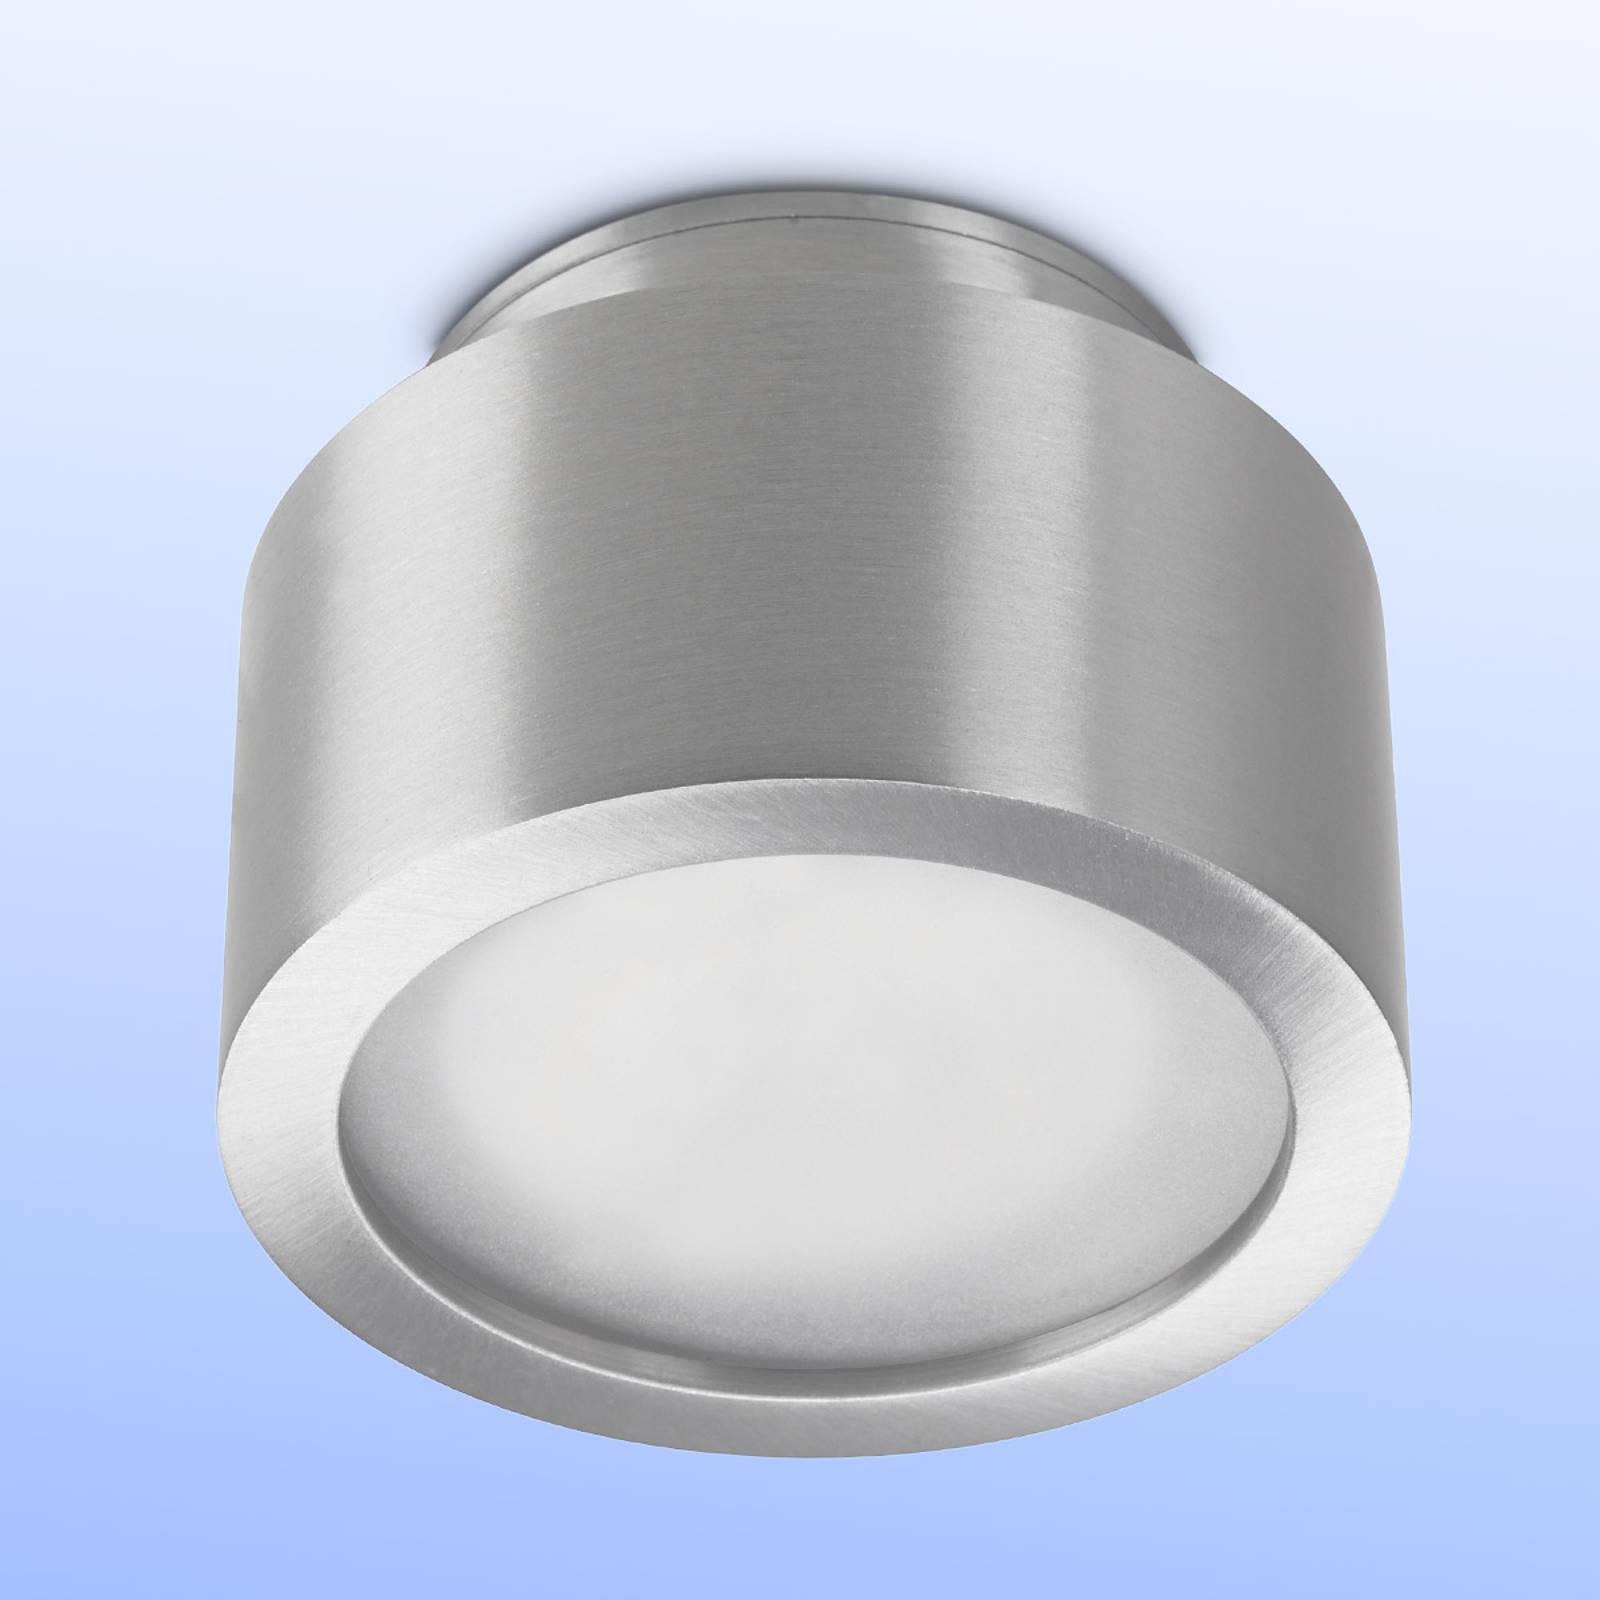 Miniplafon bathroom ceiling light with LED from Pujol